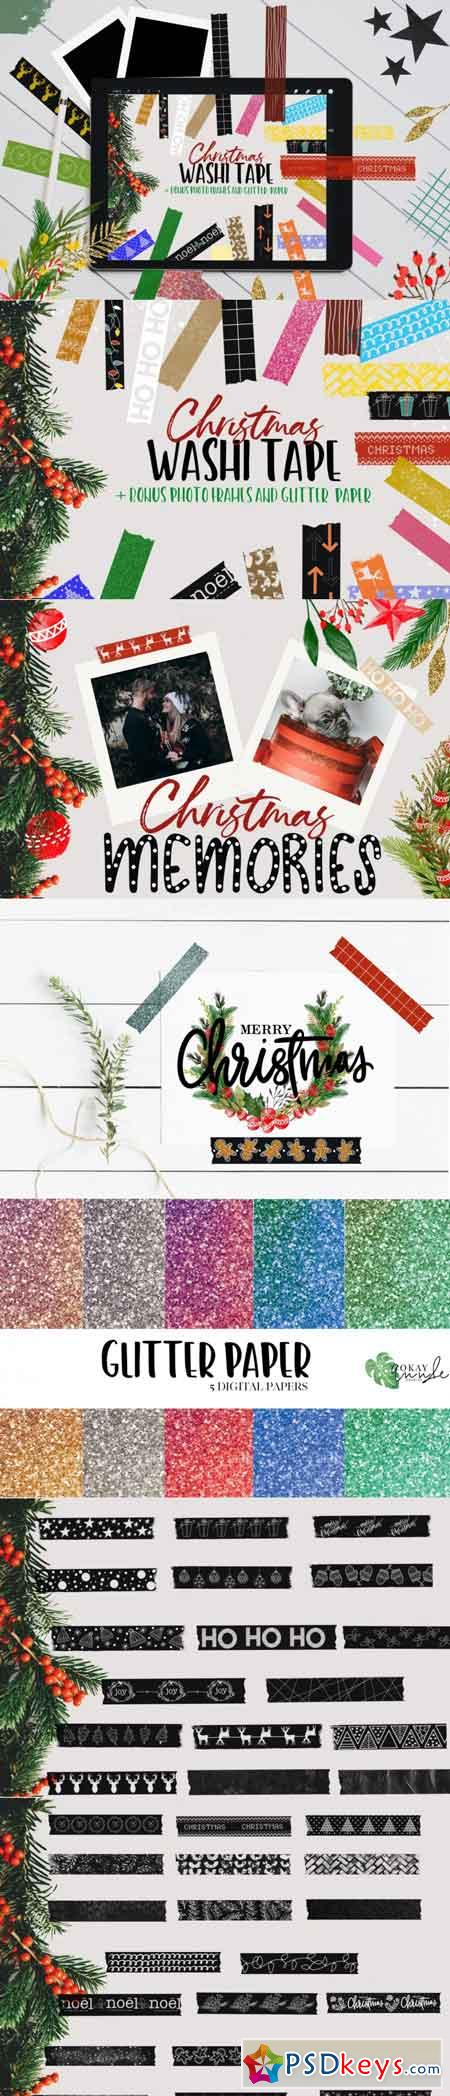 Christmas Washi Tape Stamp Pack 3500364